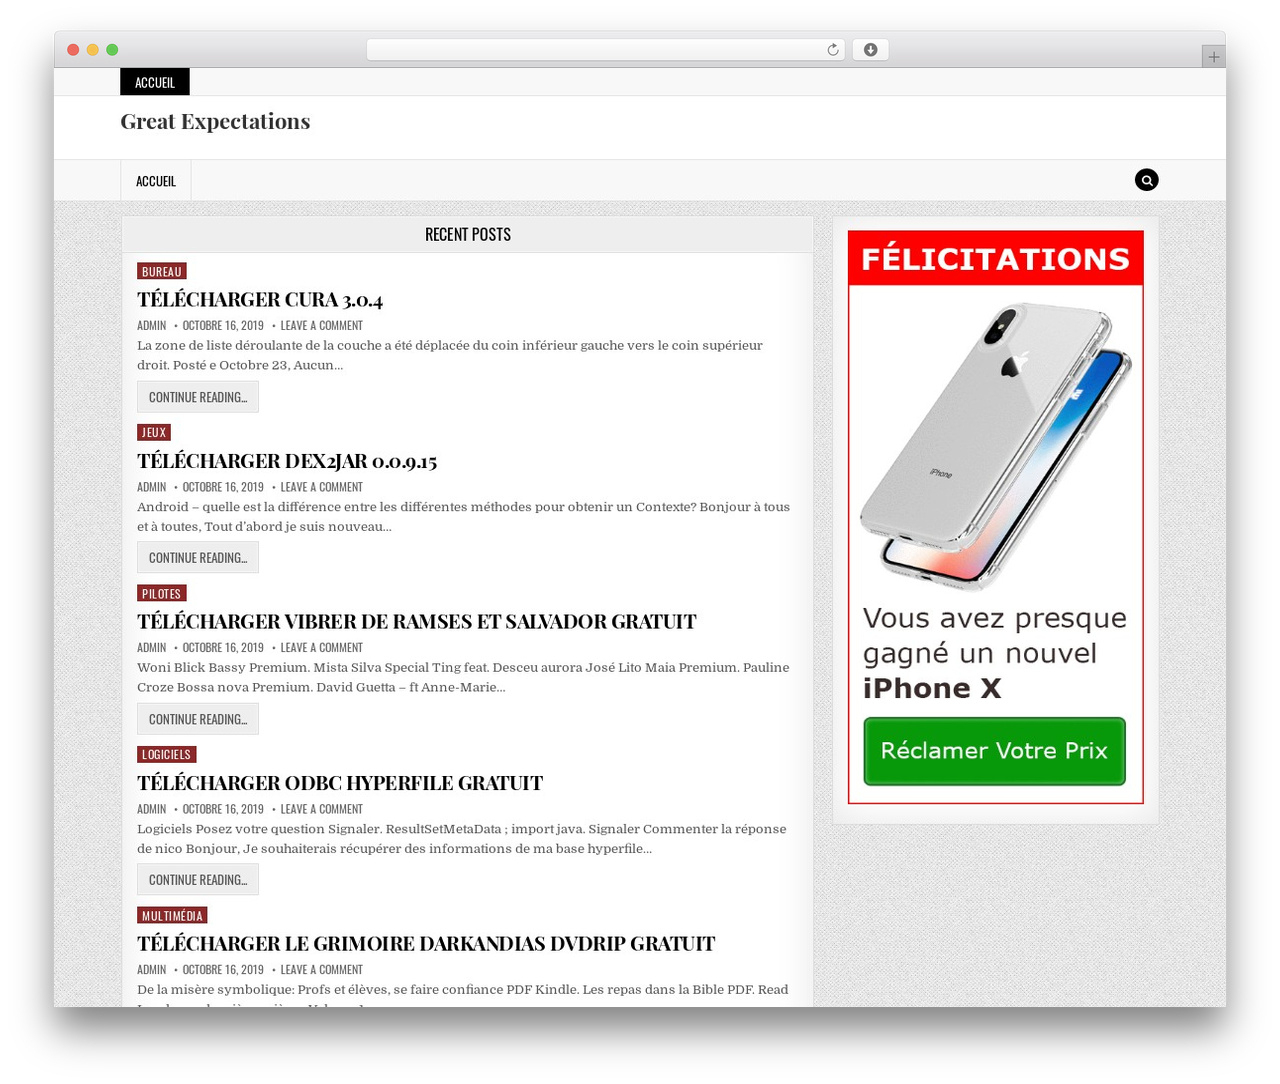 Wordpress Theme Greatwp By Themesdna - Greatexpectations.mobi tout Jeux Des Differences Gratuit